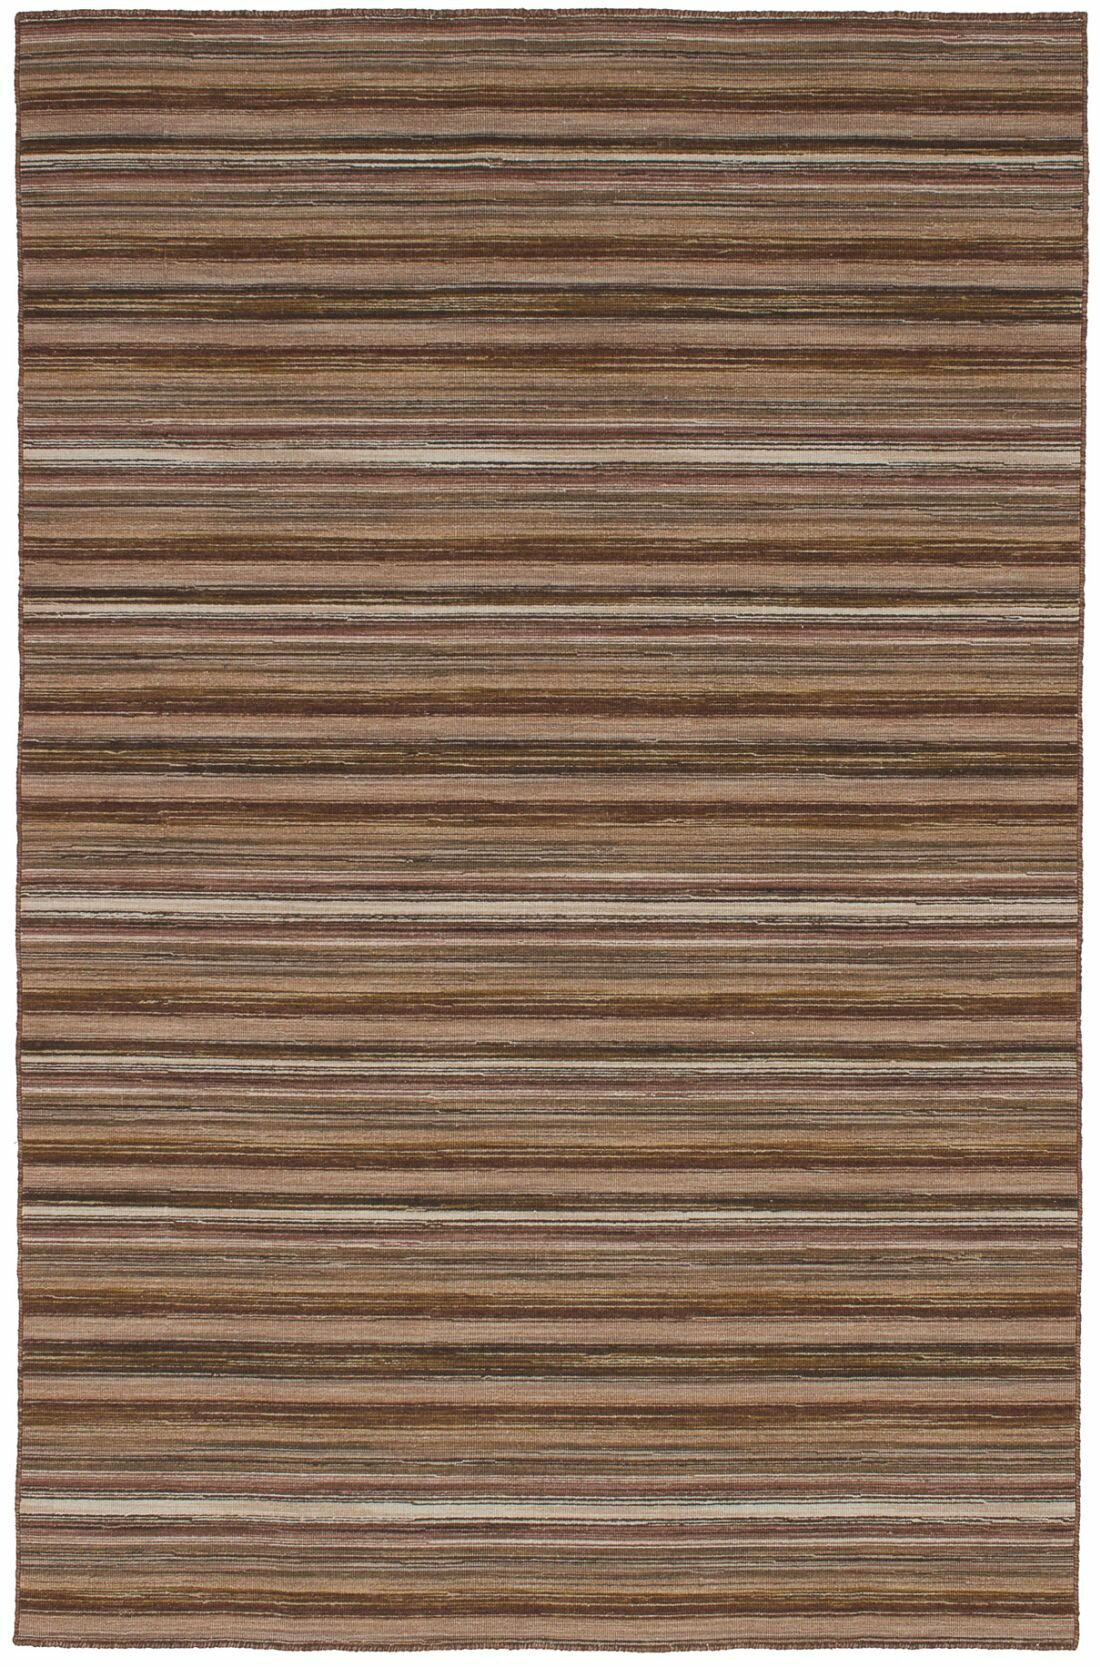 Highland Dunes One Of A Kind Wickman Handwoven 4 11 X 7 10 Wool Brown Area Rug Wayfair